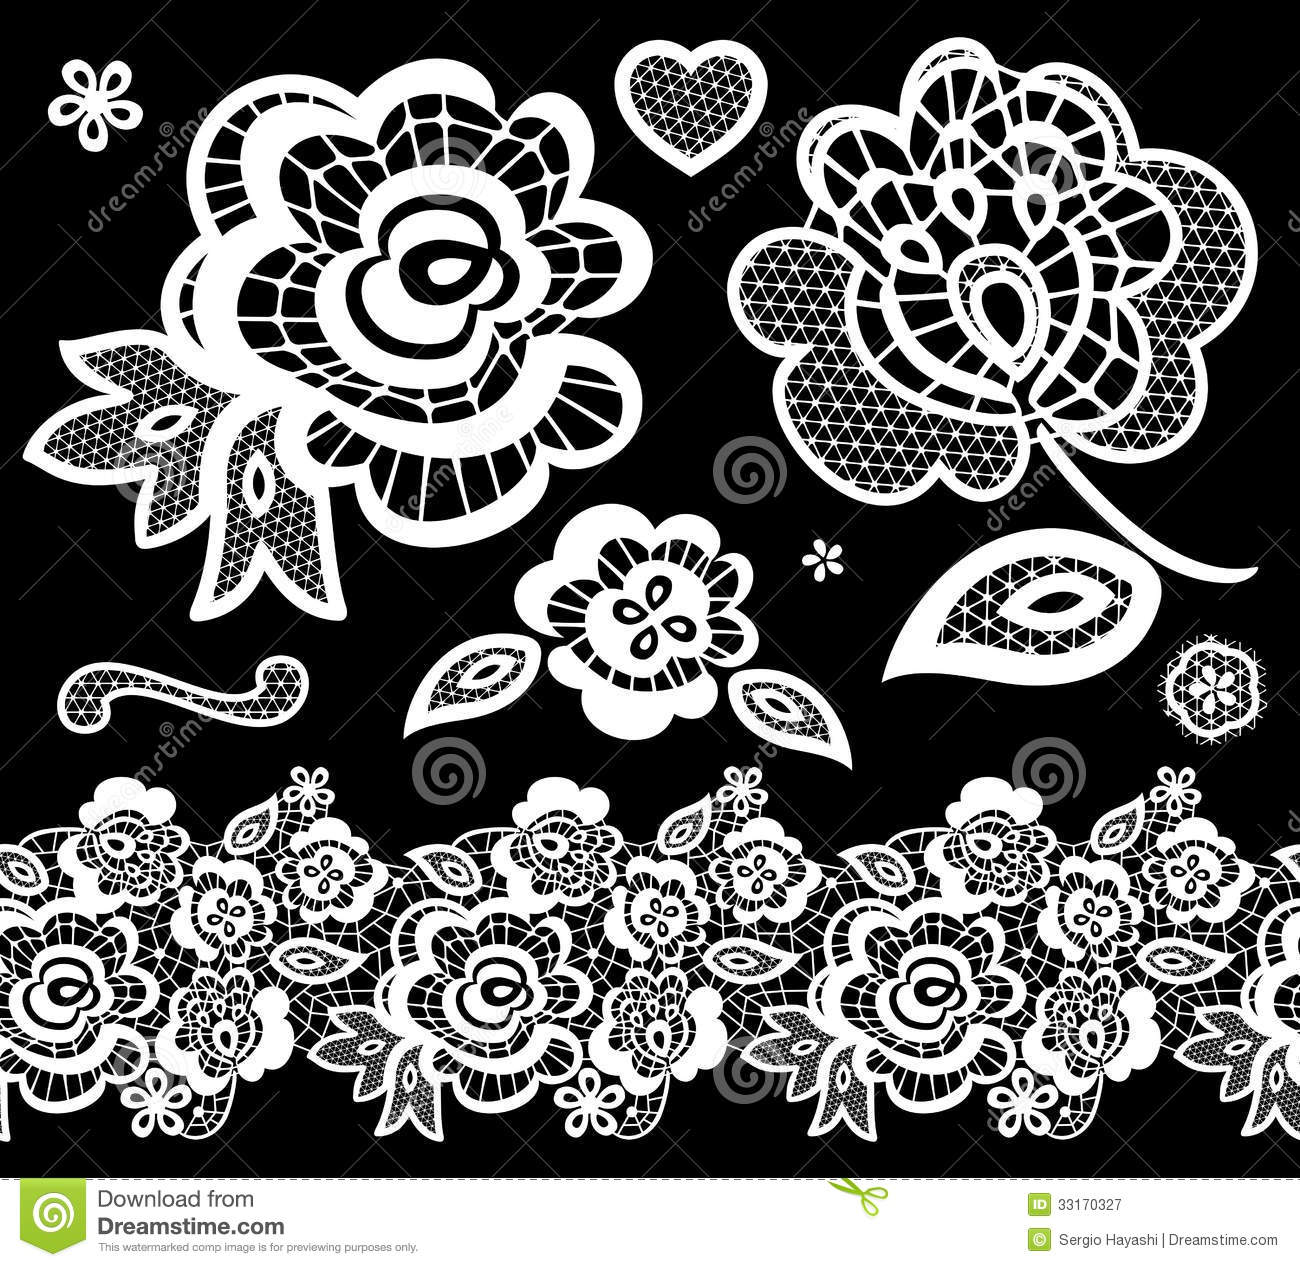 free lace embroidery designs to download